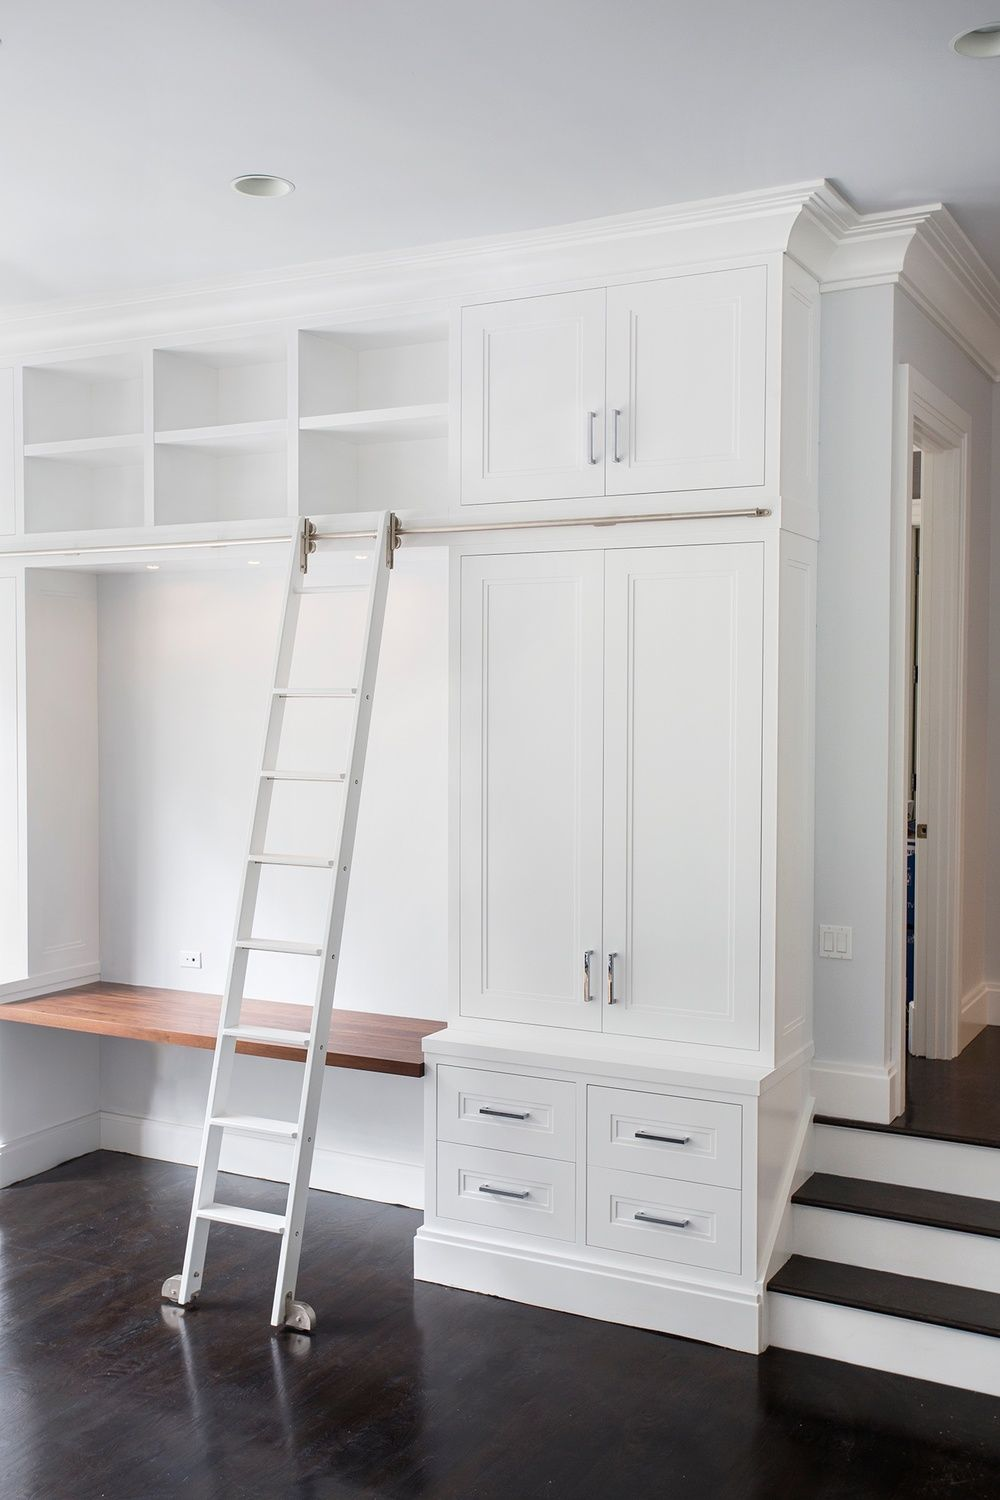 Painted Built-Ins With Rolling Ladder | woonkamer | Pinterest